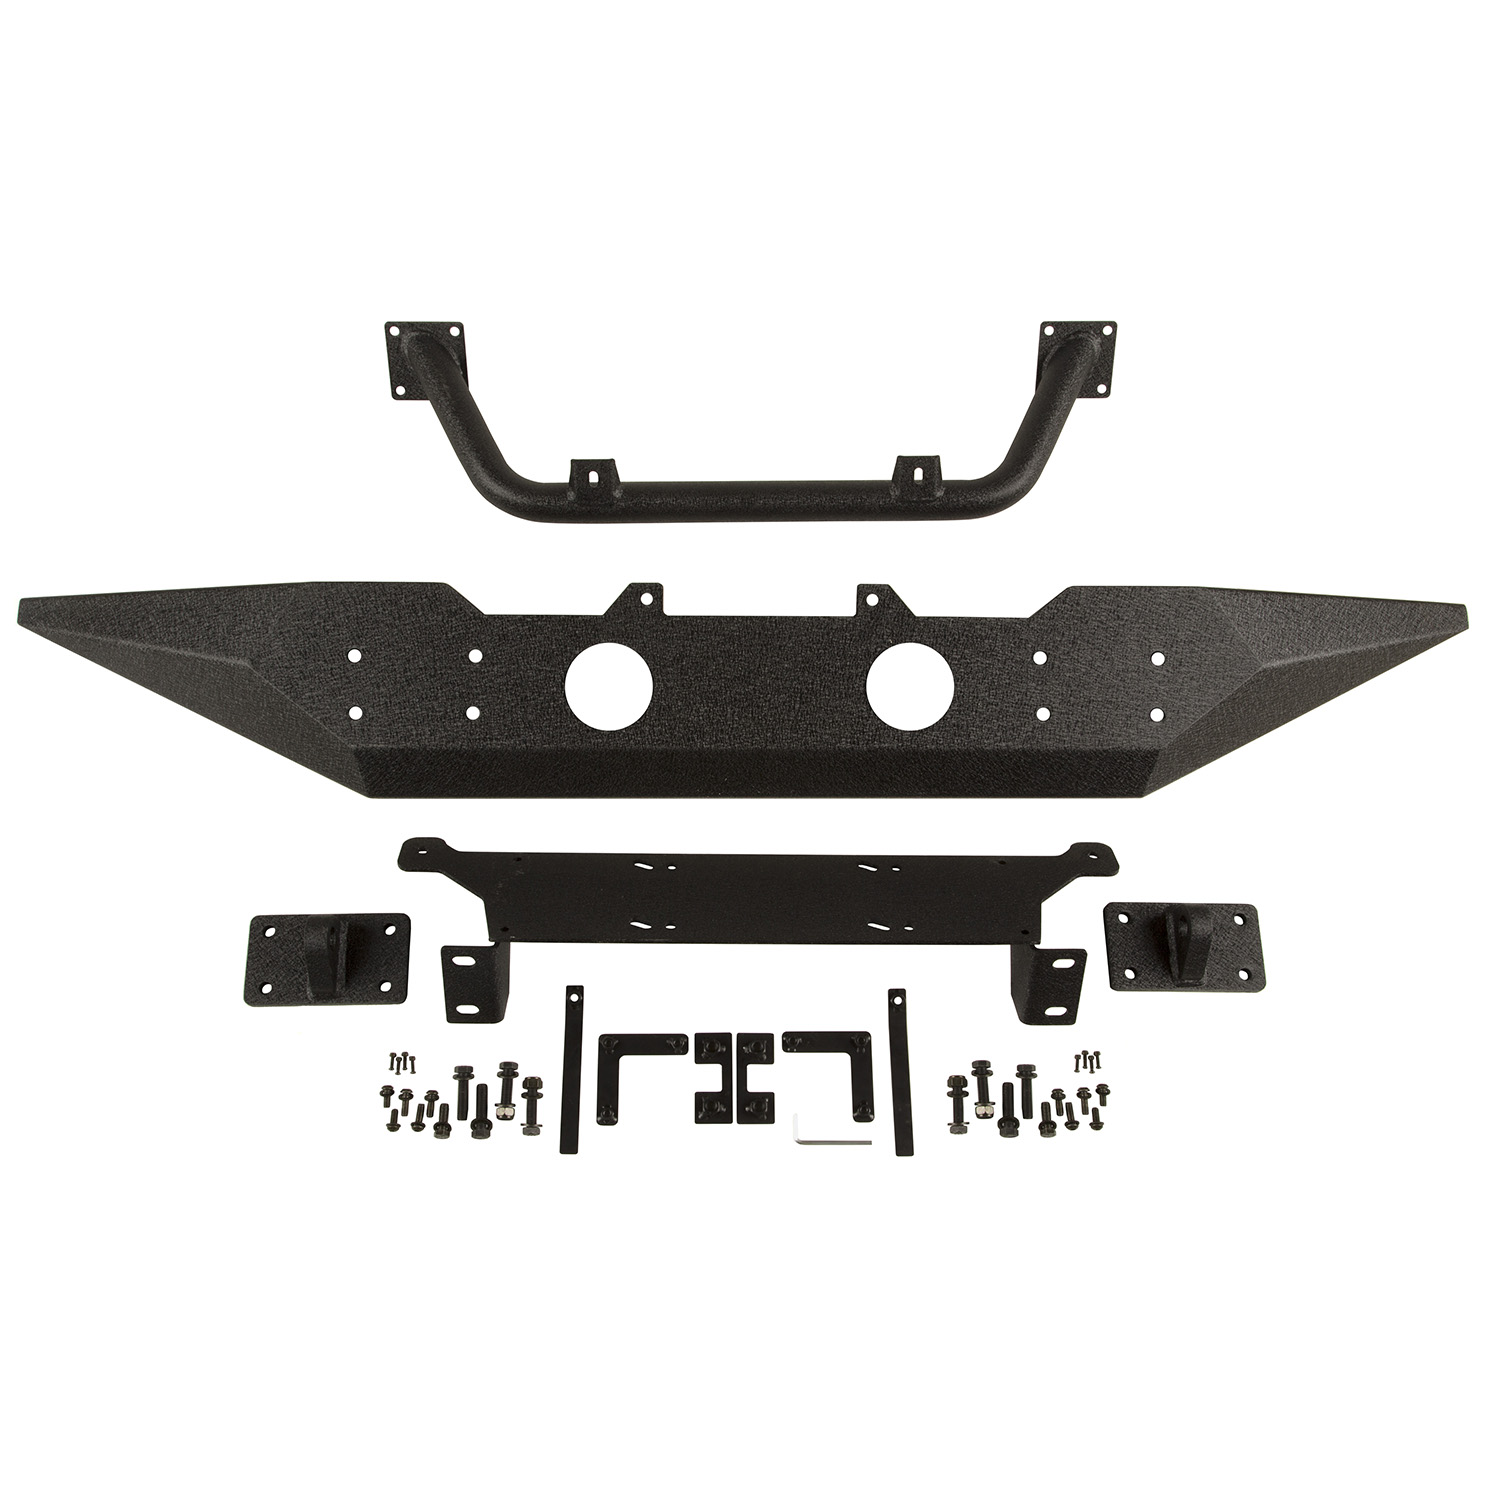 Spartan Bumper Front Standard Ends Overrider 07-18 Wrangler JK Get FREE D-Rings (11235.18) w/ Isolators (11235.30) with Spartan front bumper